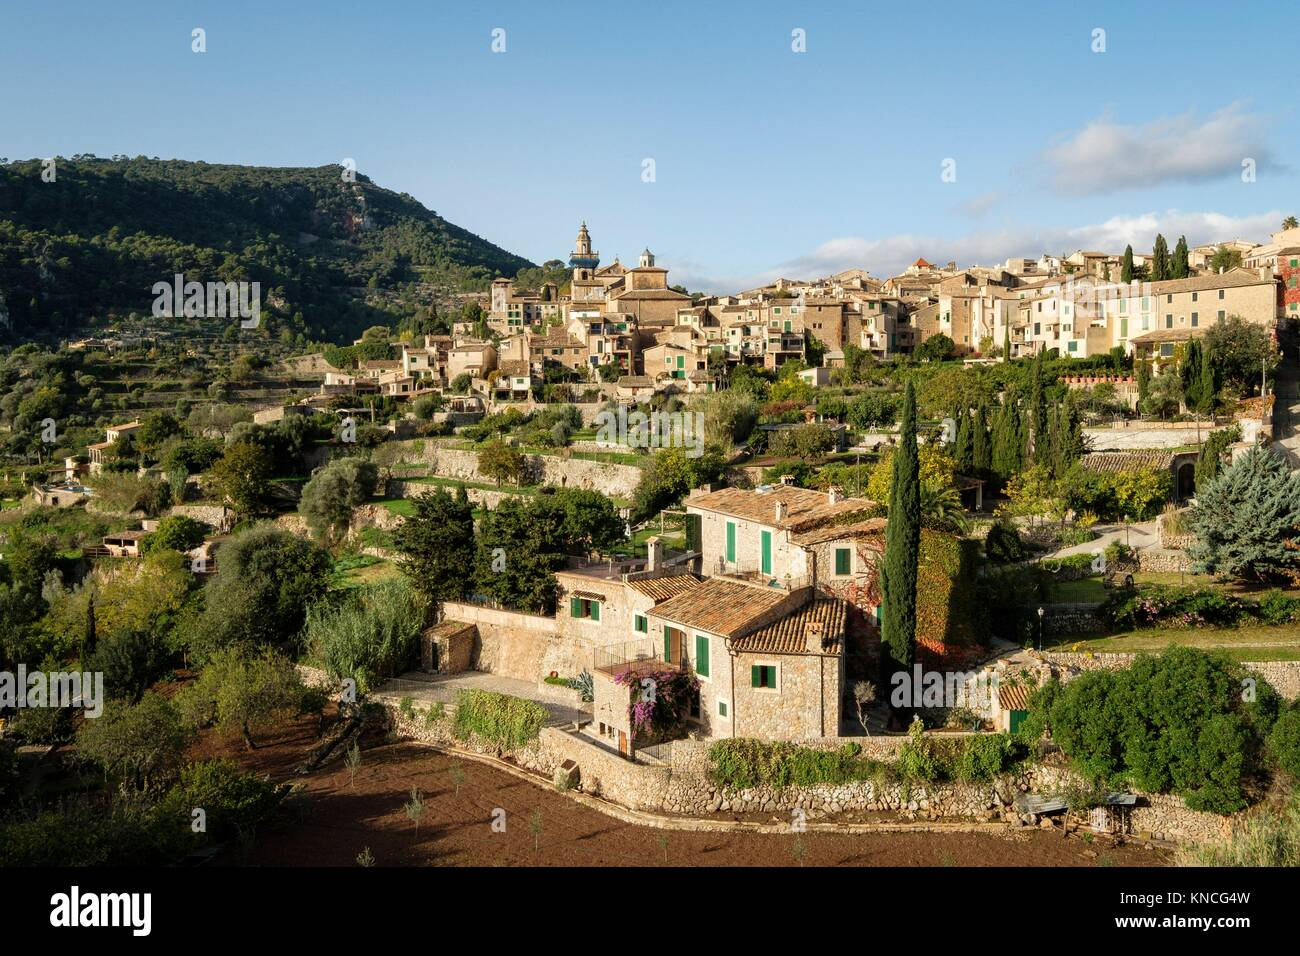 Cartuja , Valldemossa, Sierra de Tramuntana, Mallorca, Balearic Islands, spain, europe. Stock Photo